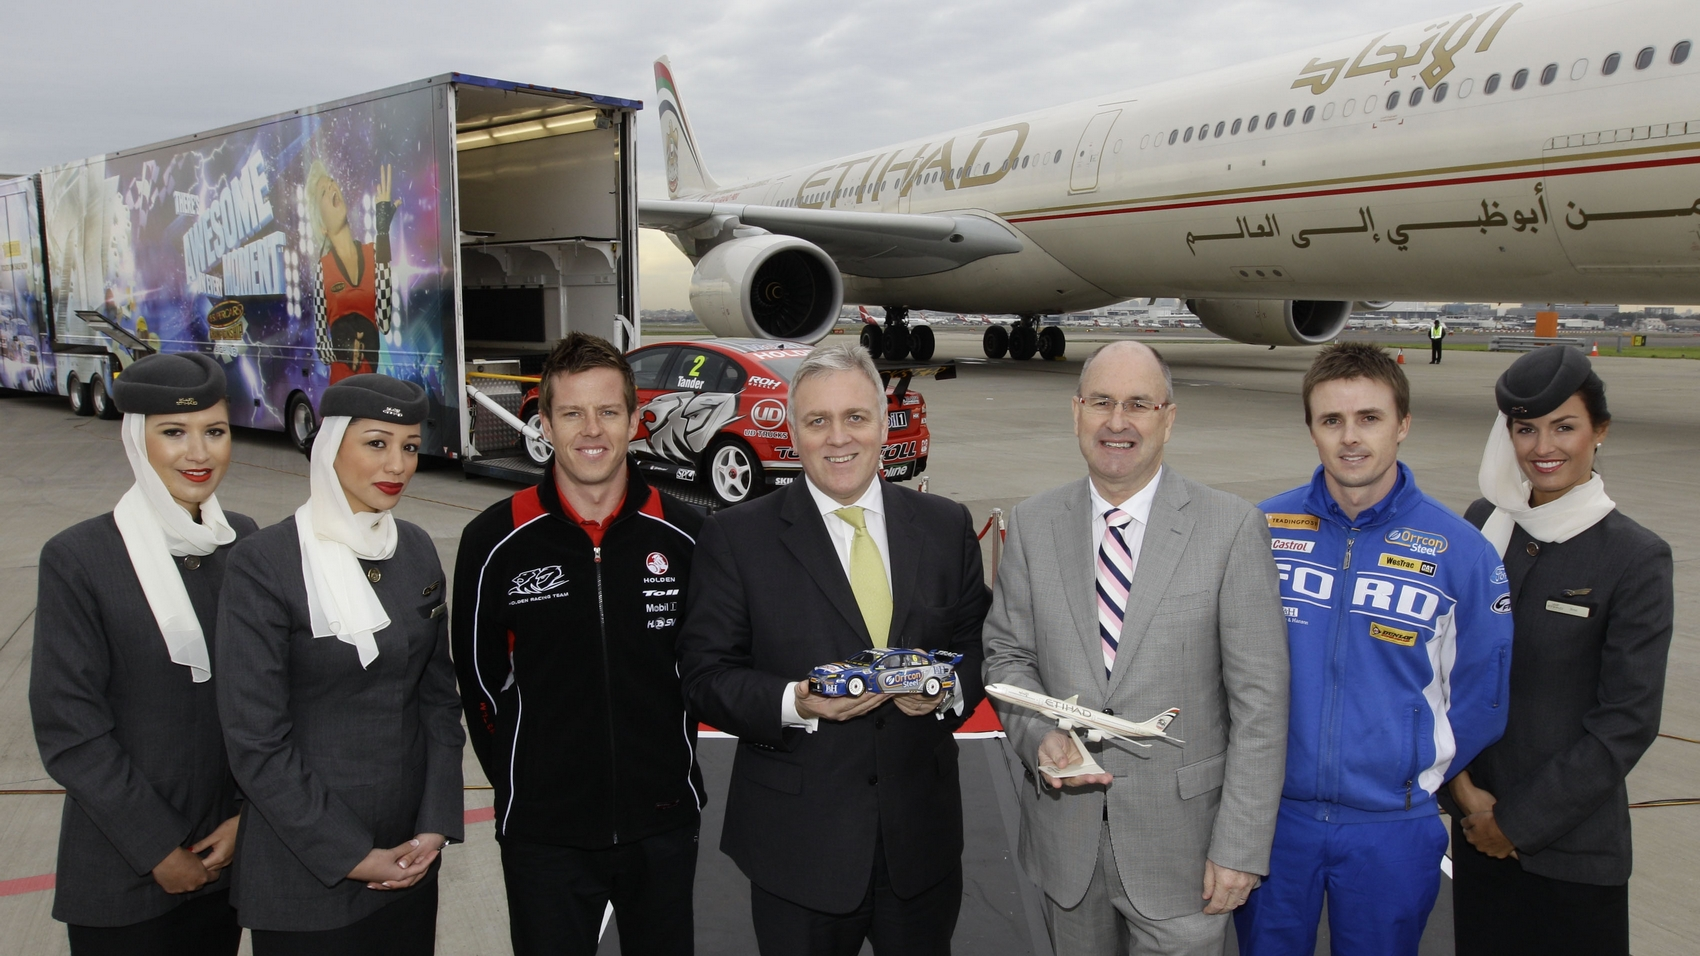 V8 Supercars: Etihad Airways partners with V8 Supercars as Official International Airline